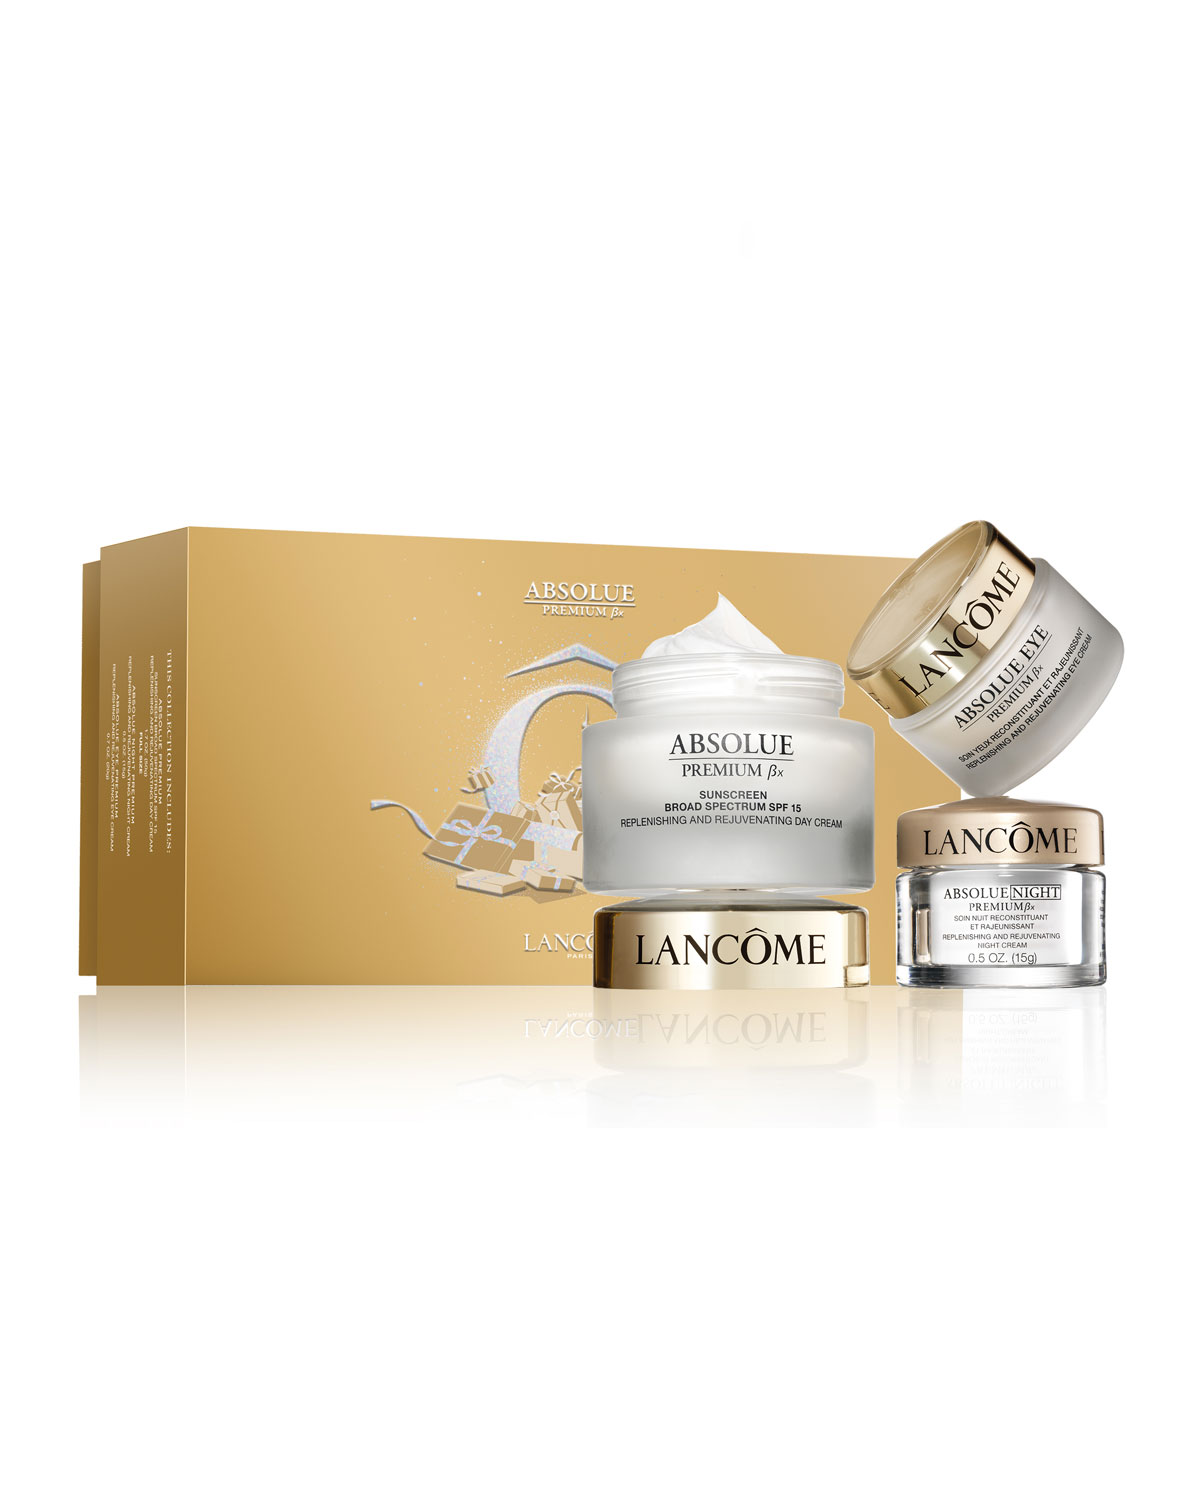 Absolue Premium Bx Collection